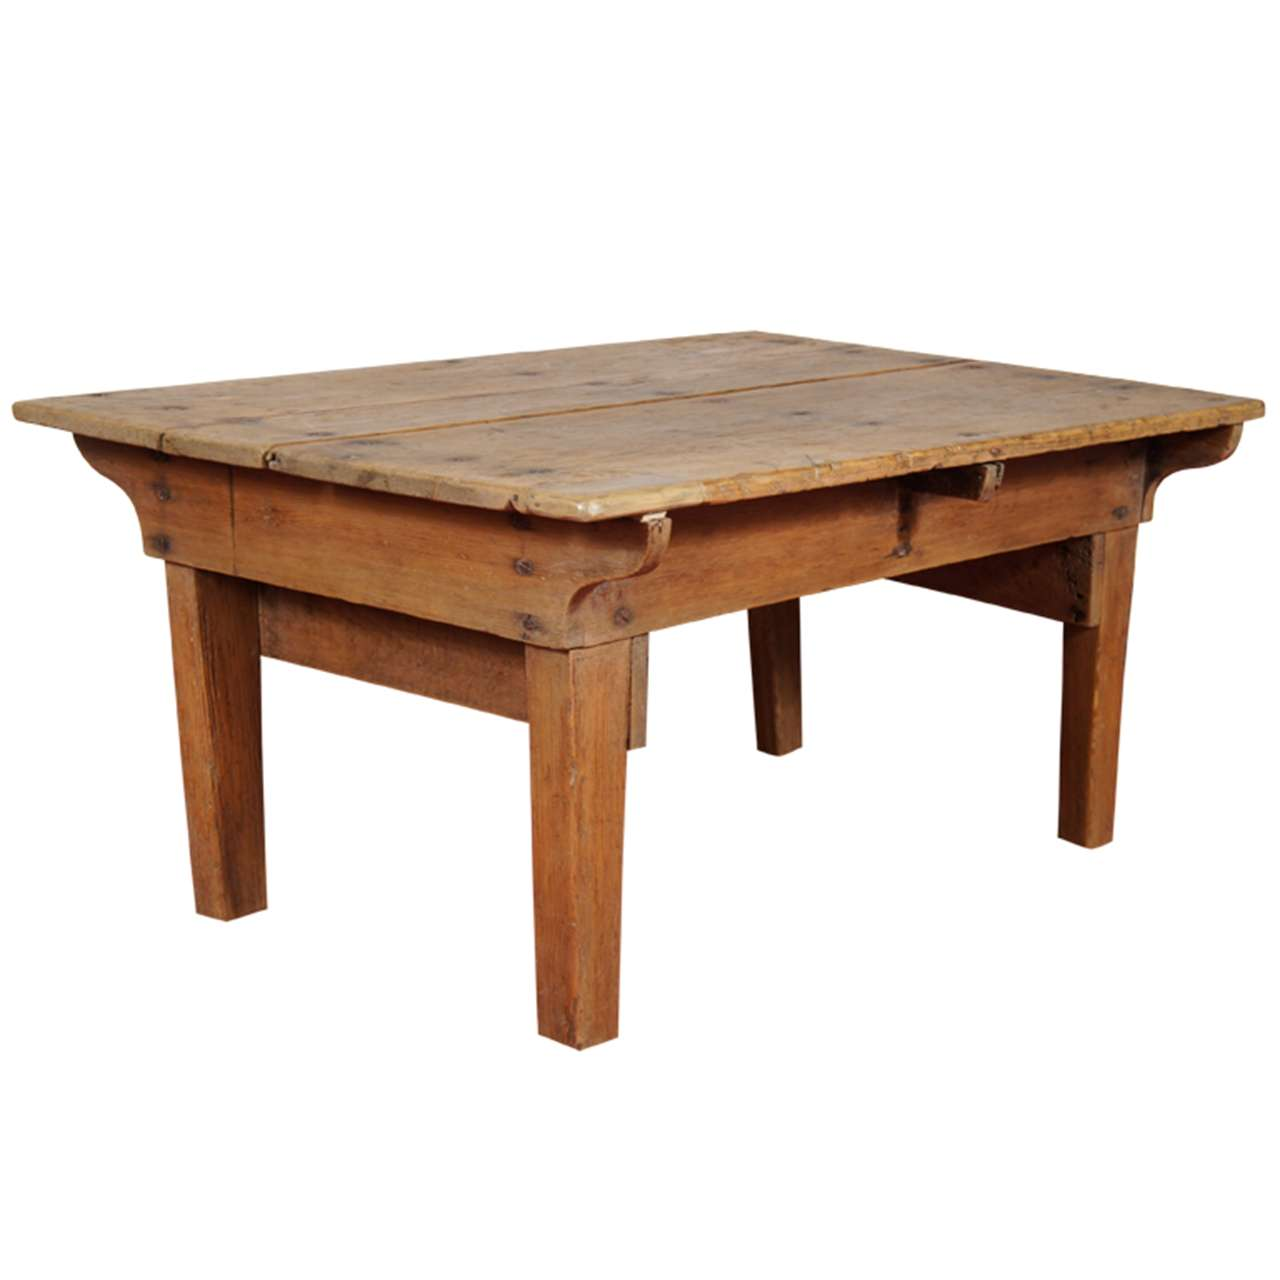 Rustic french country pine coffee table at 1stdibs for Pine coffee table